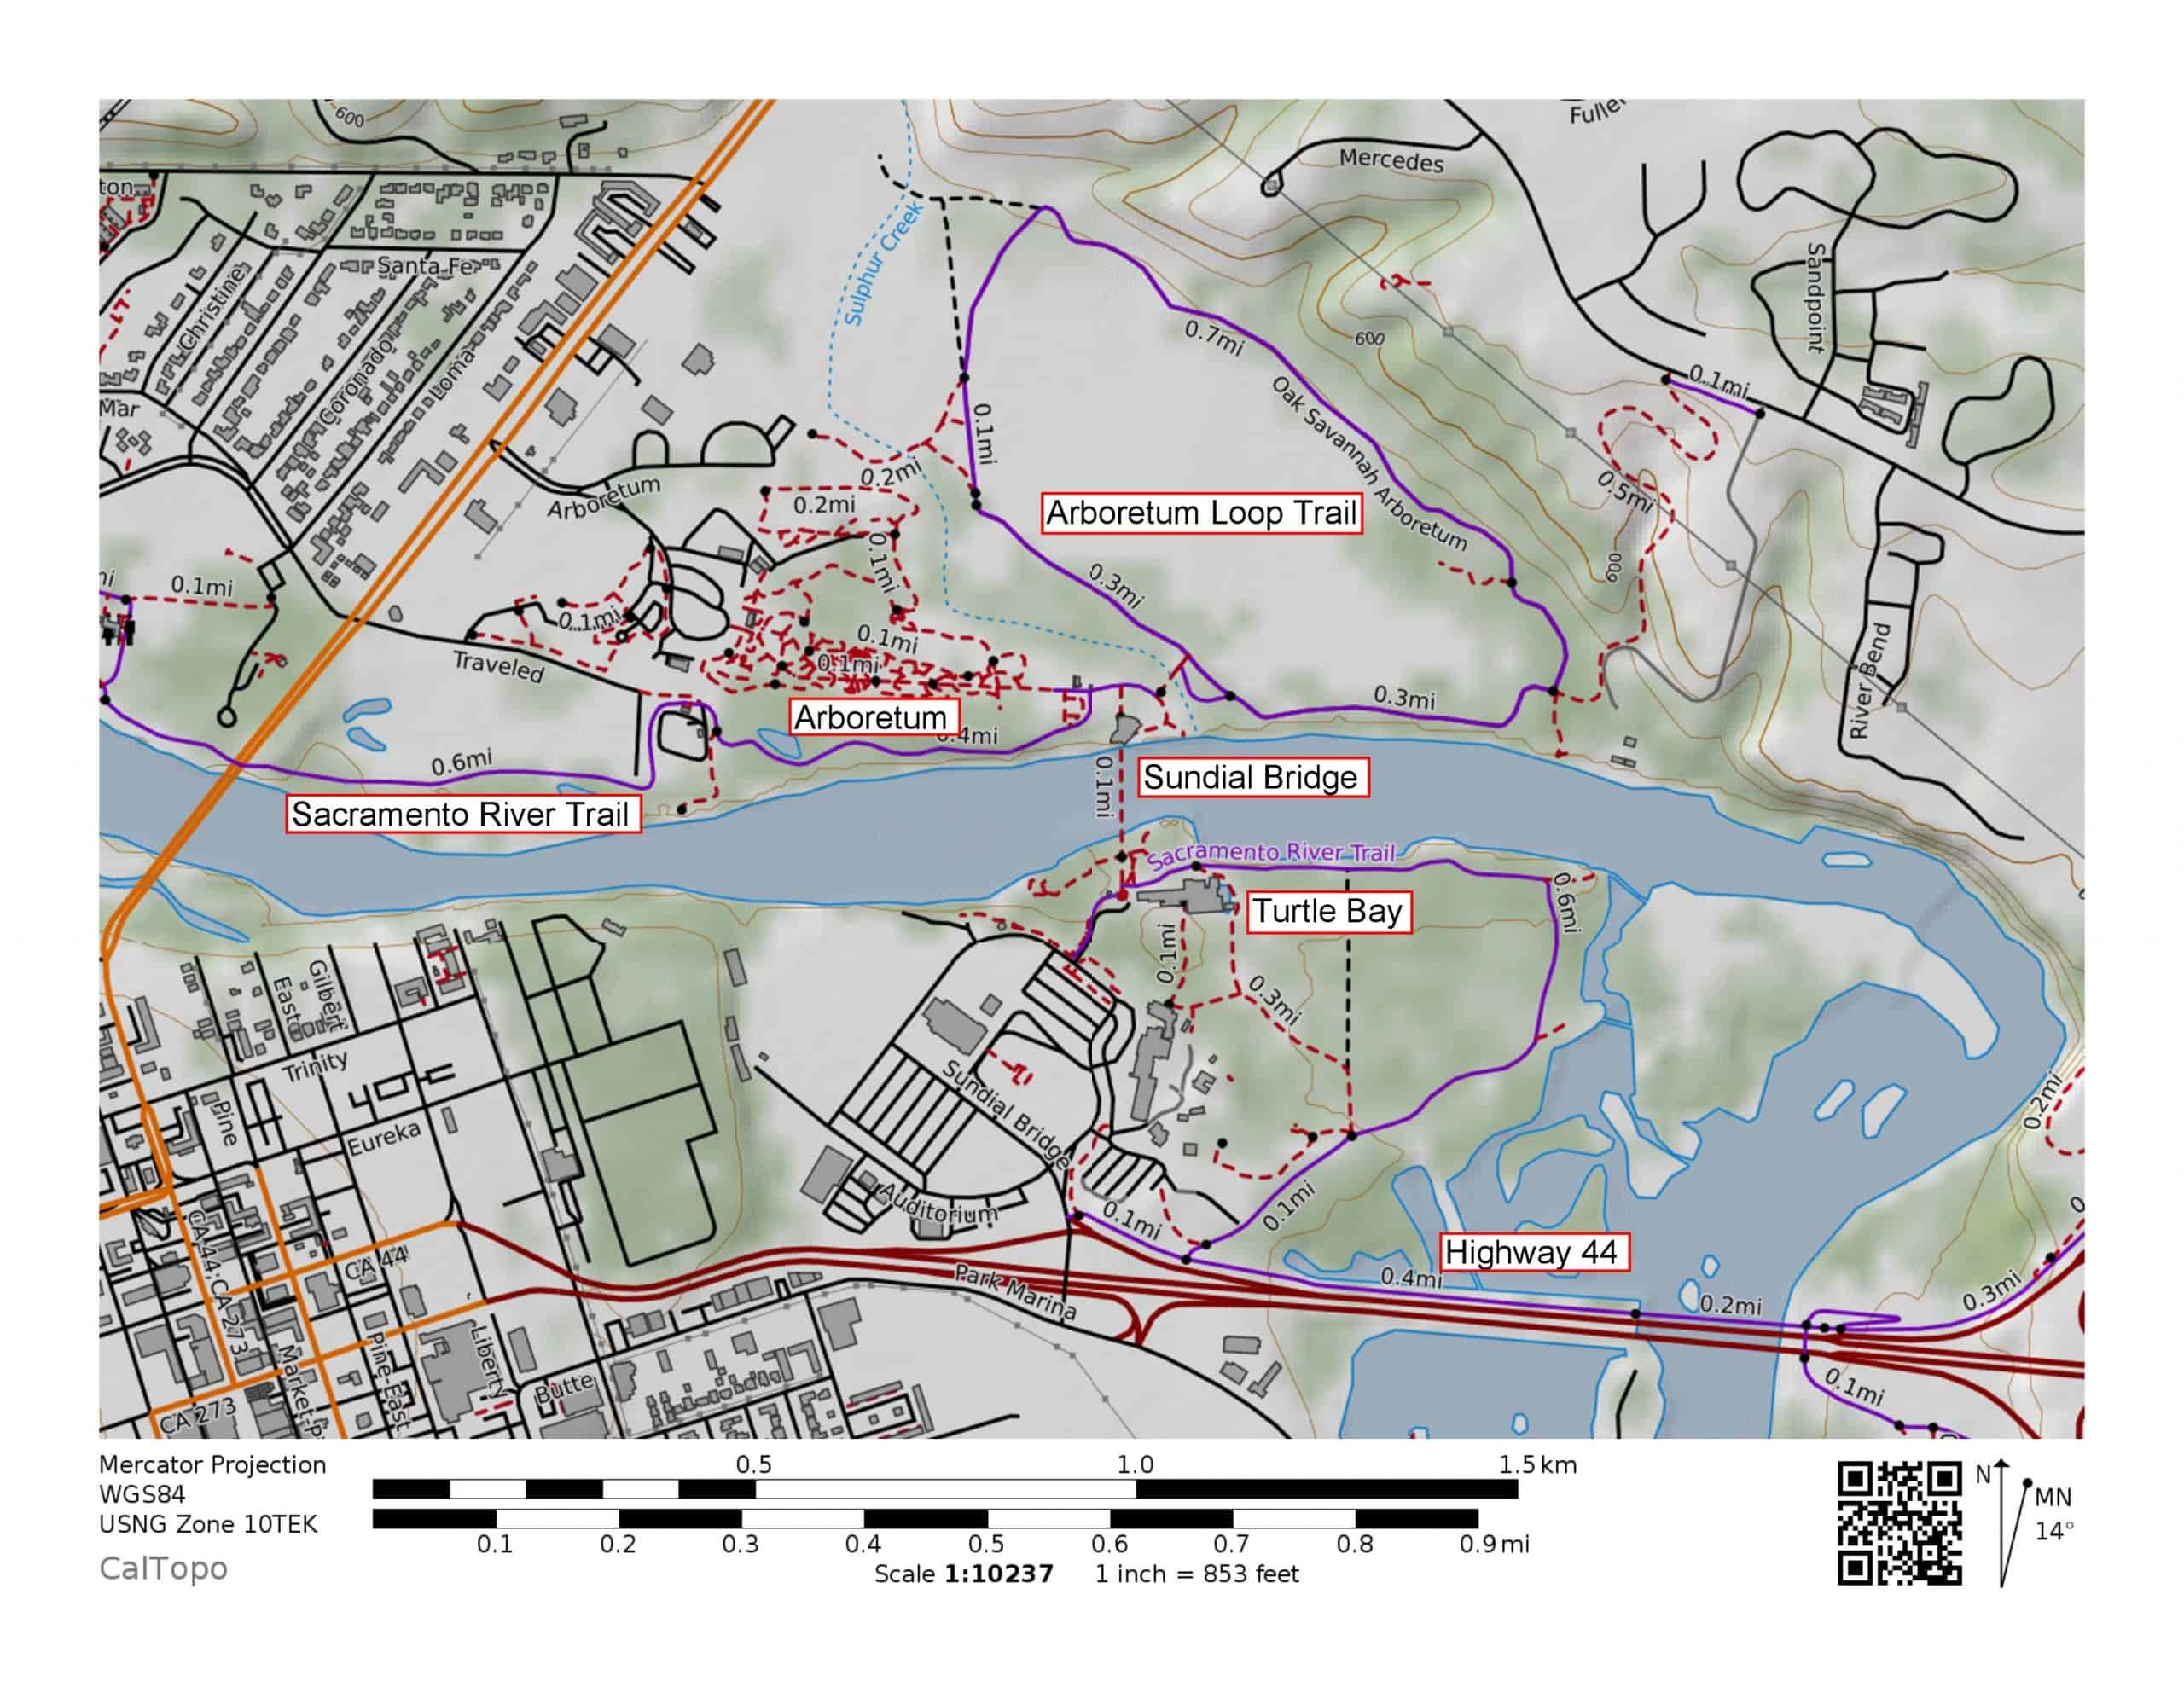 Hiking and walking trail map of Turtle Bay: Sundial Bridge, Sacramento River Trail, Arboretum Loop Trail, McConnell Arboretum and Botanical Gardens.